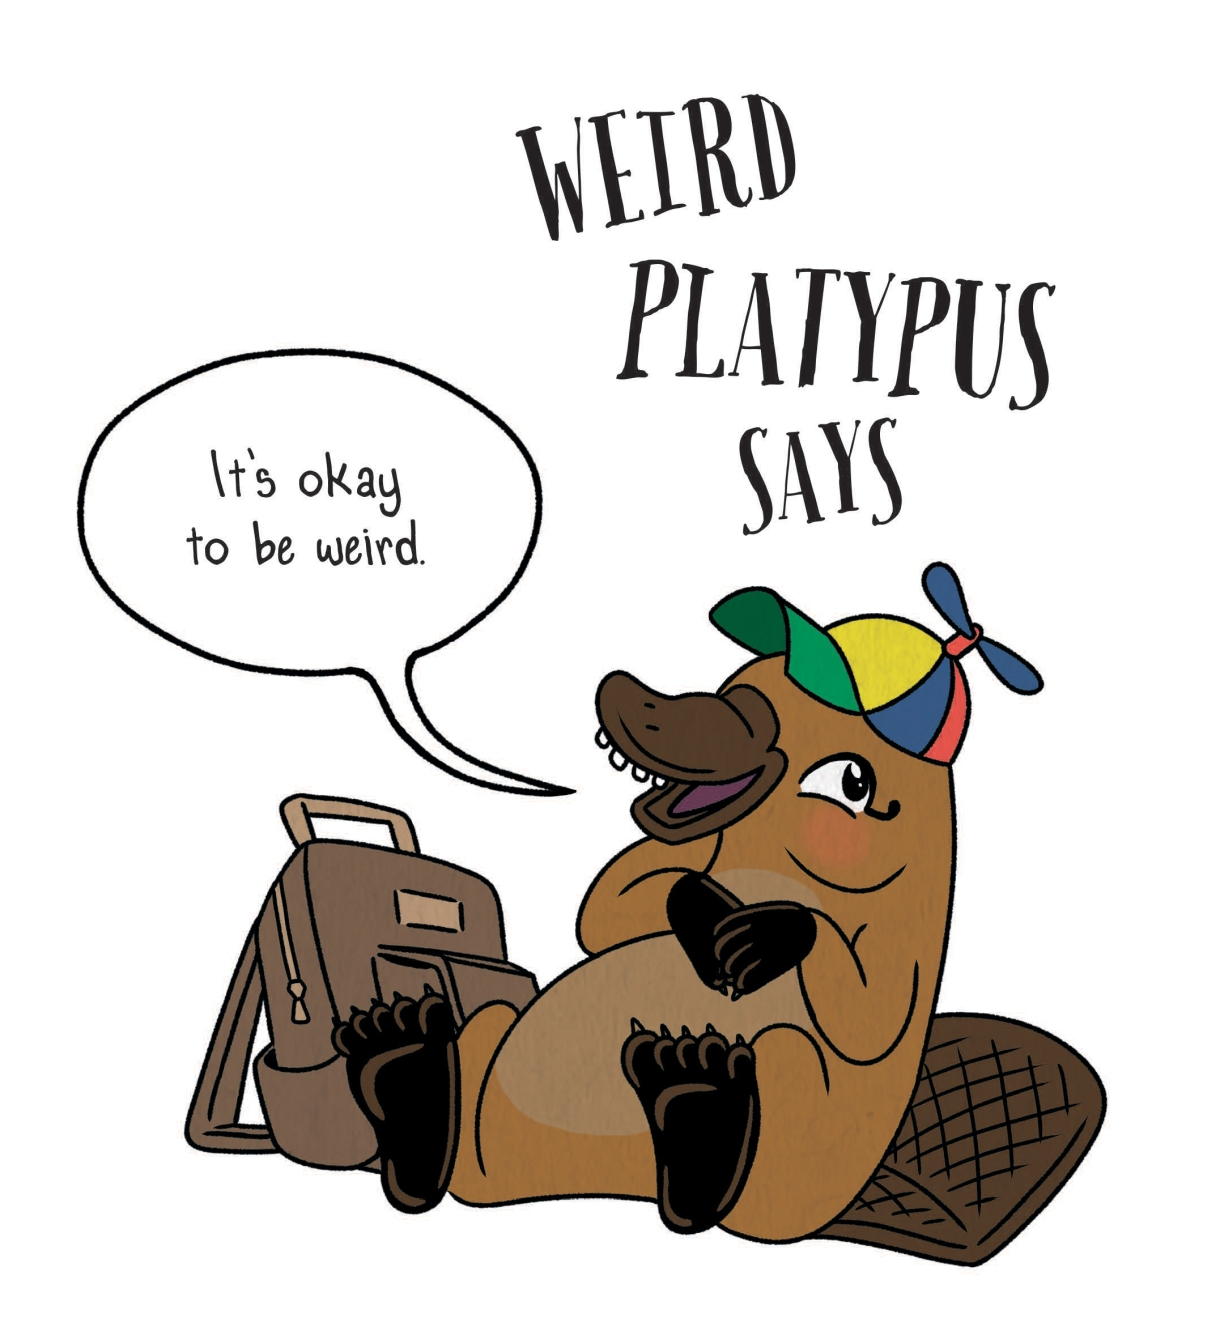 WEIRD PLATYPUS SAYS: It's okay to be weird.